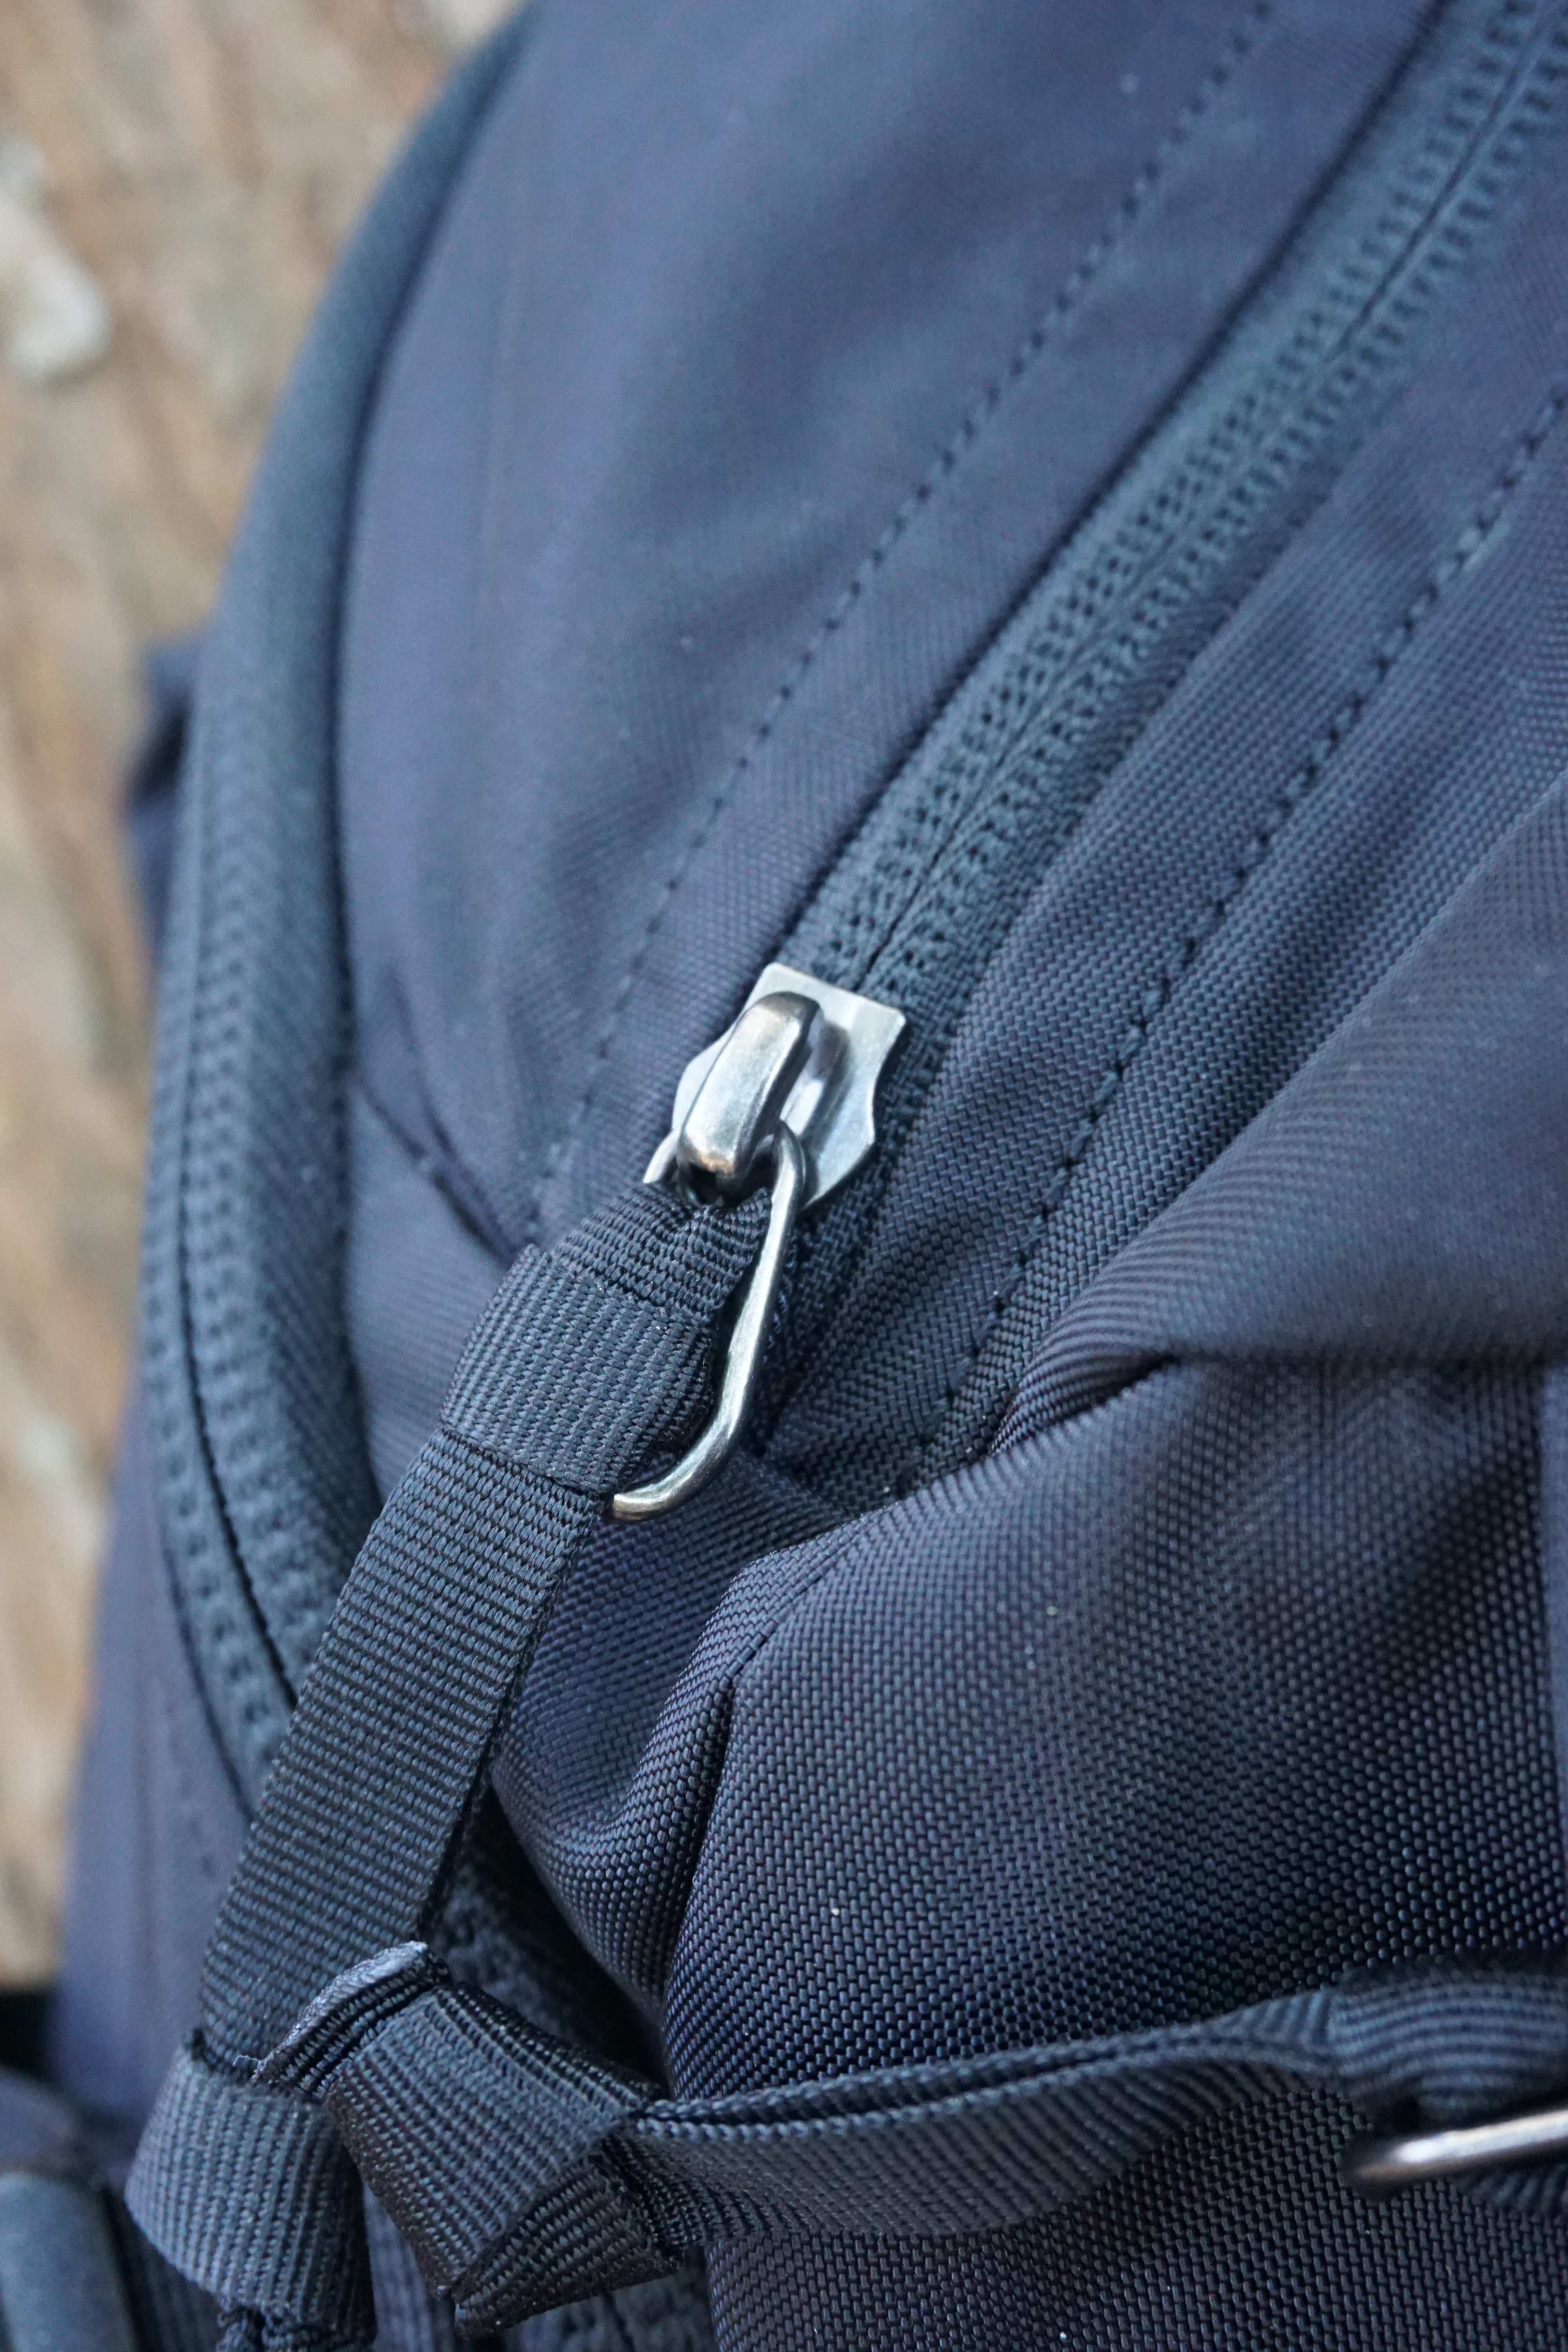 EVERGOODS MPL 30 Backpack Review zipper pull close up